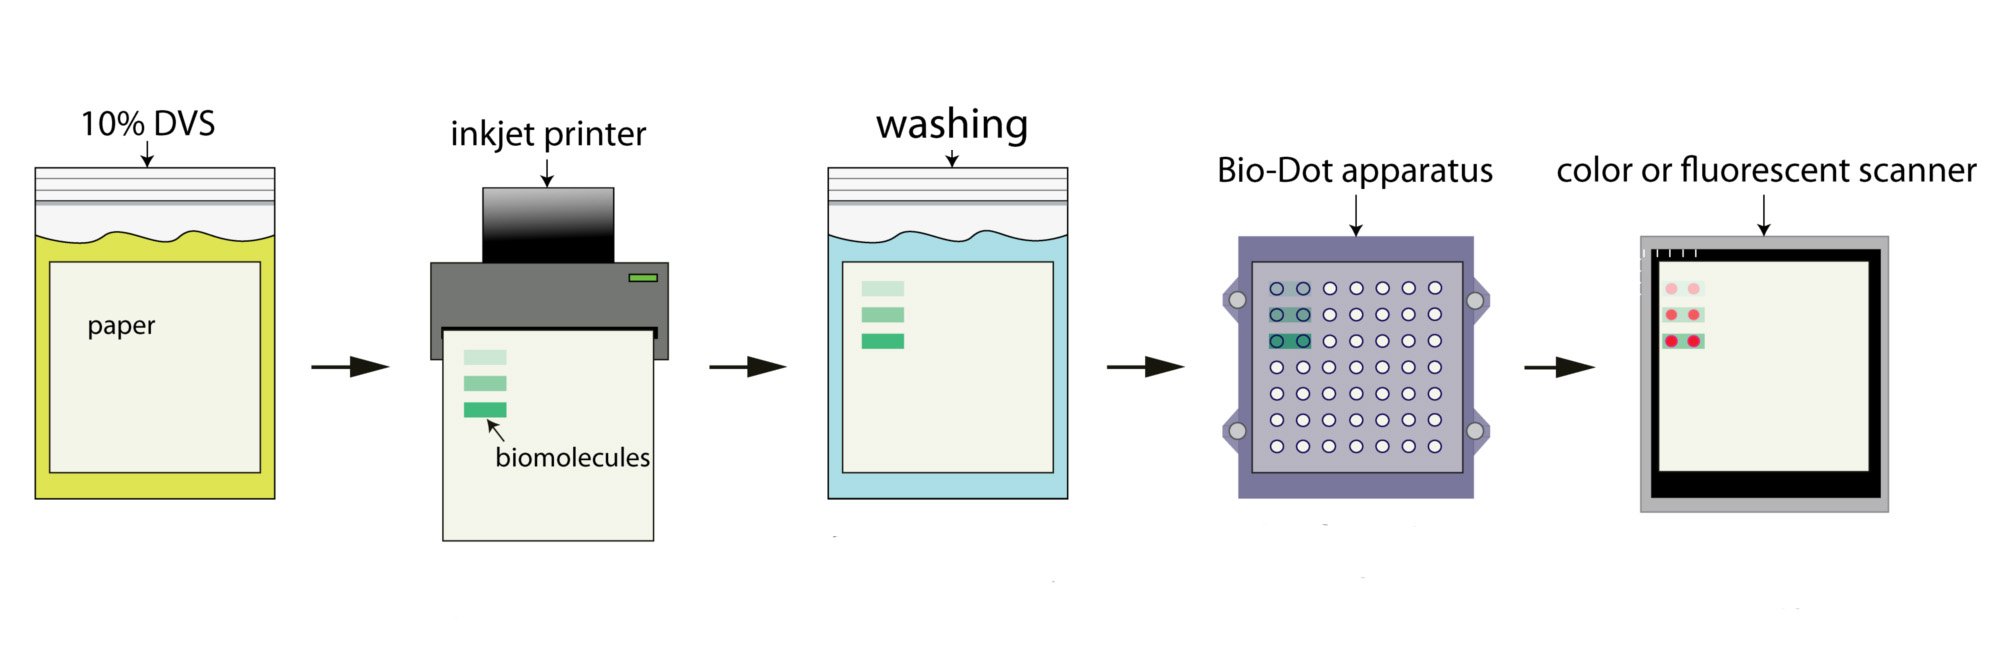 Schematic of the paper-treating process